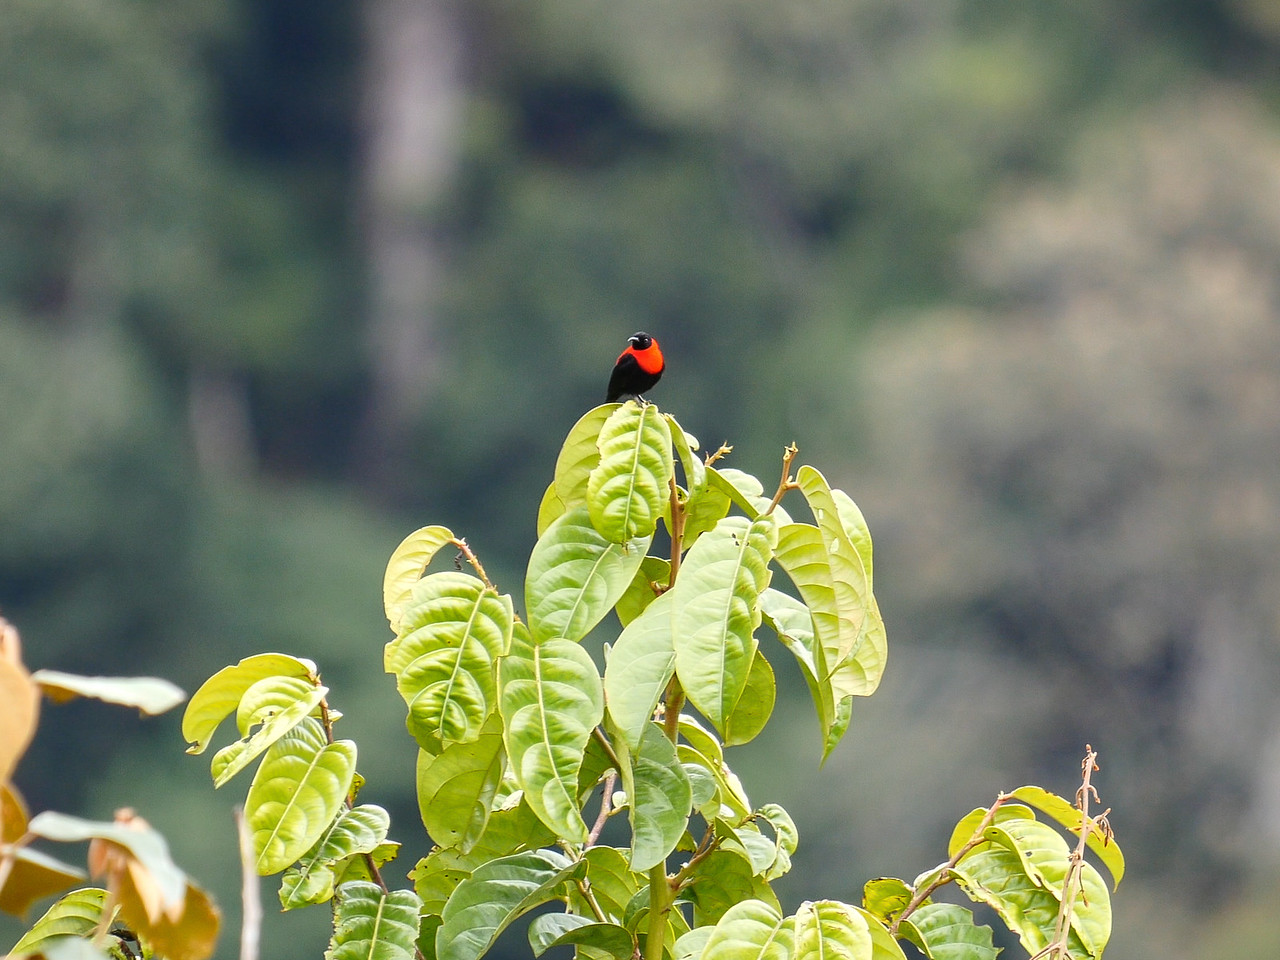 Red-collared Myzomela